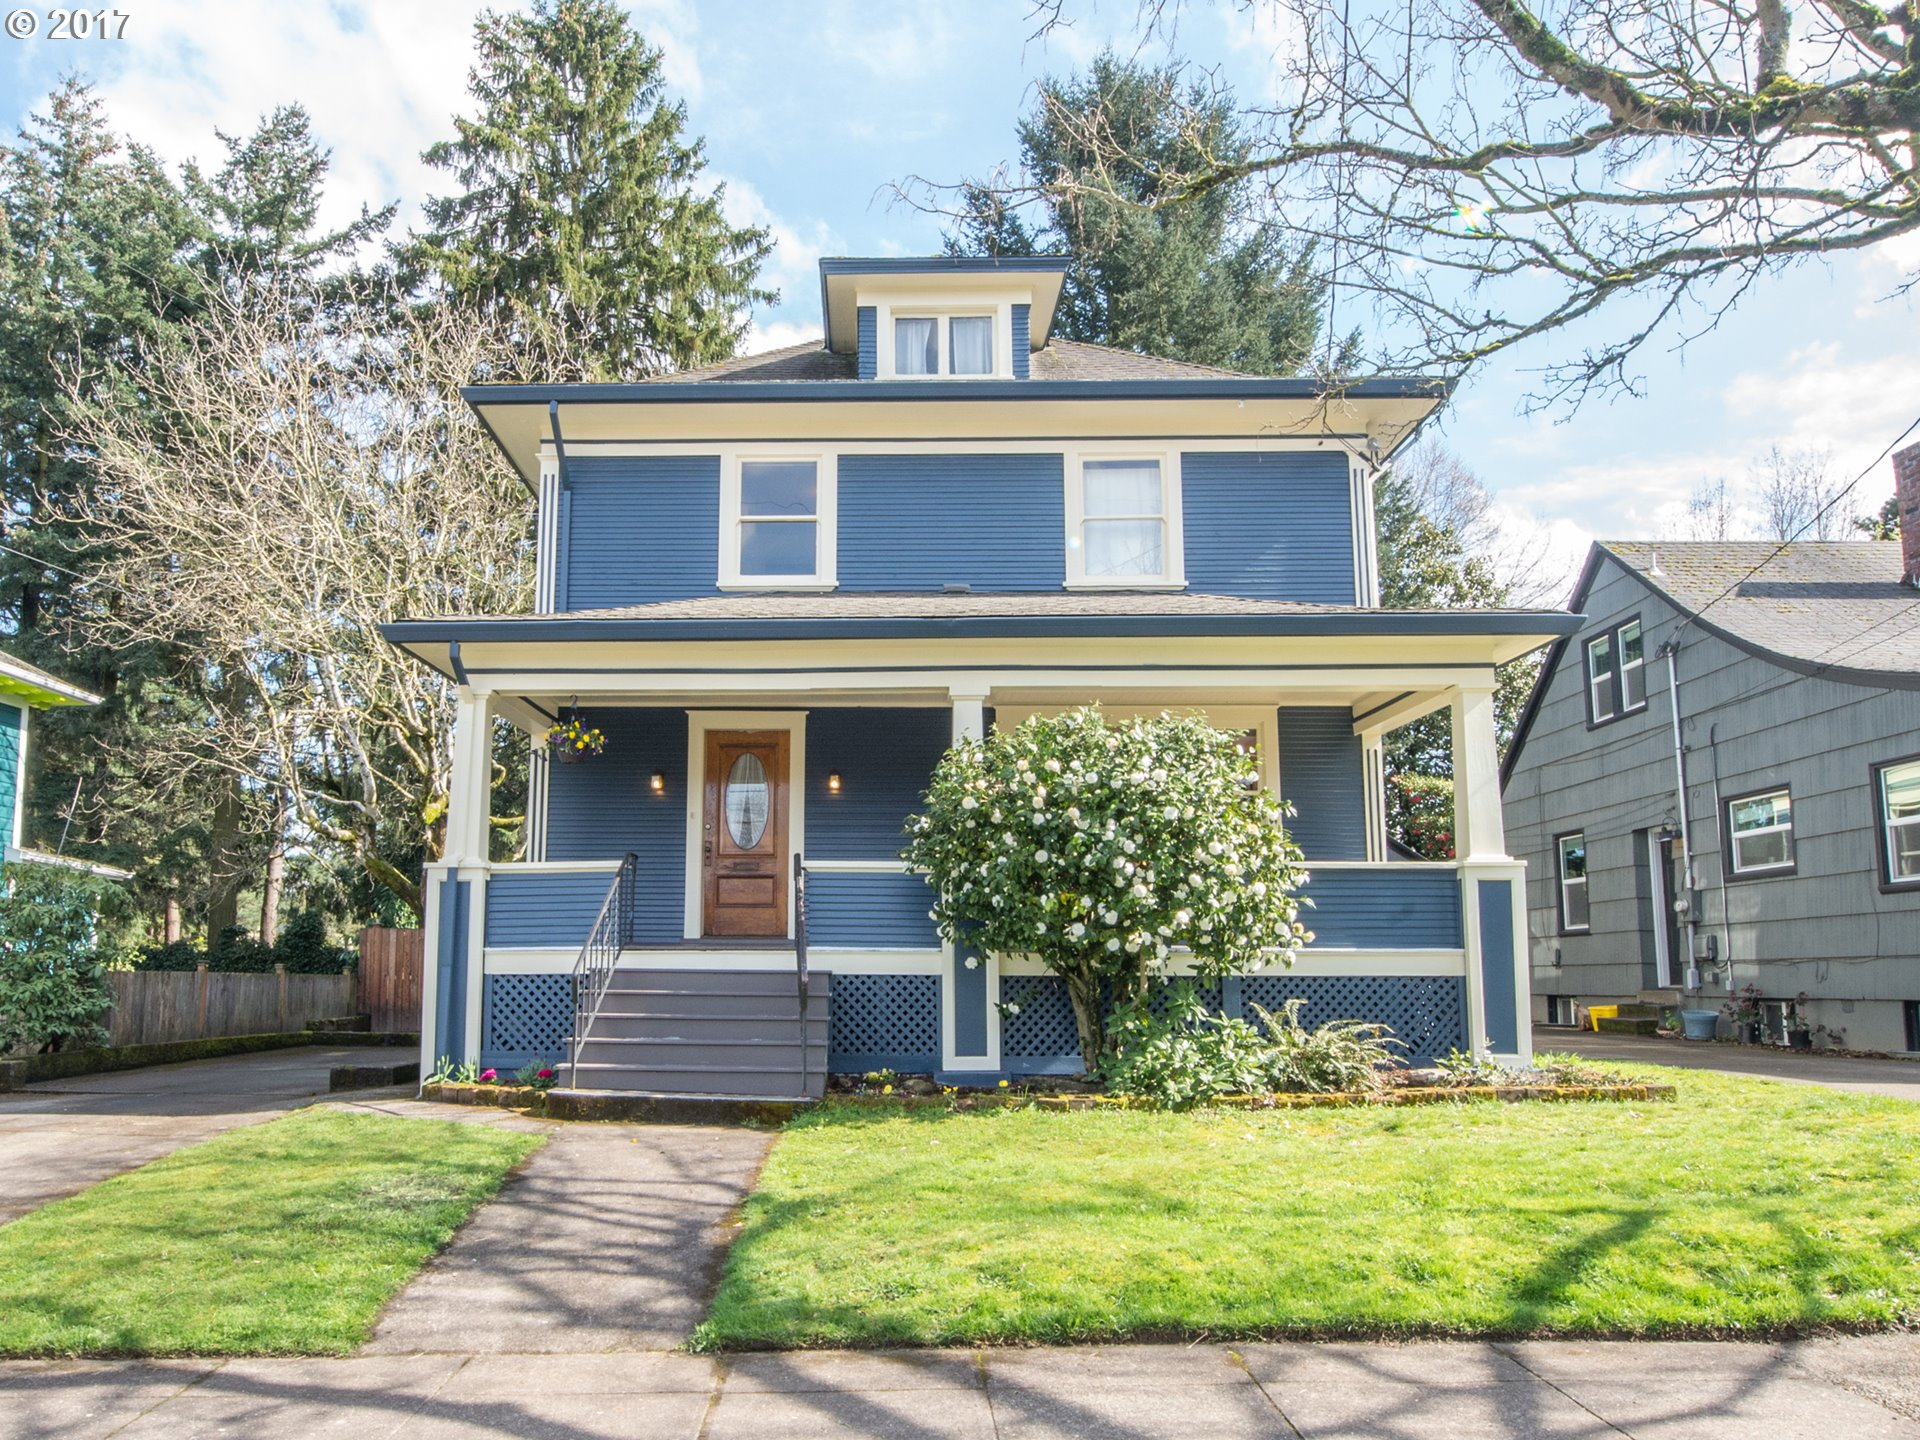 2695 sq. ft 4 bedrooms 2 bathrooms  House , Portland, OR